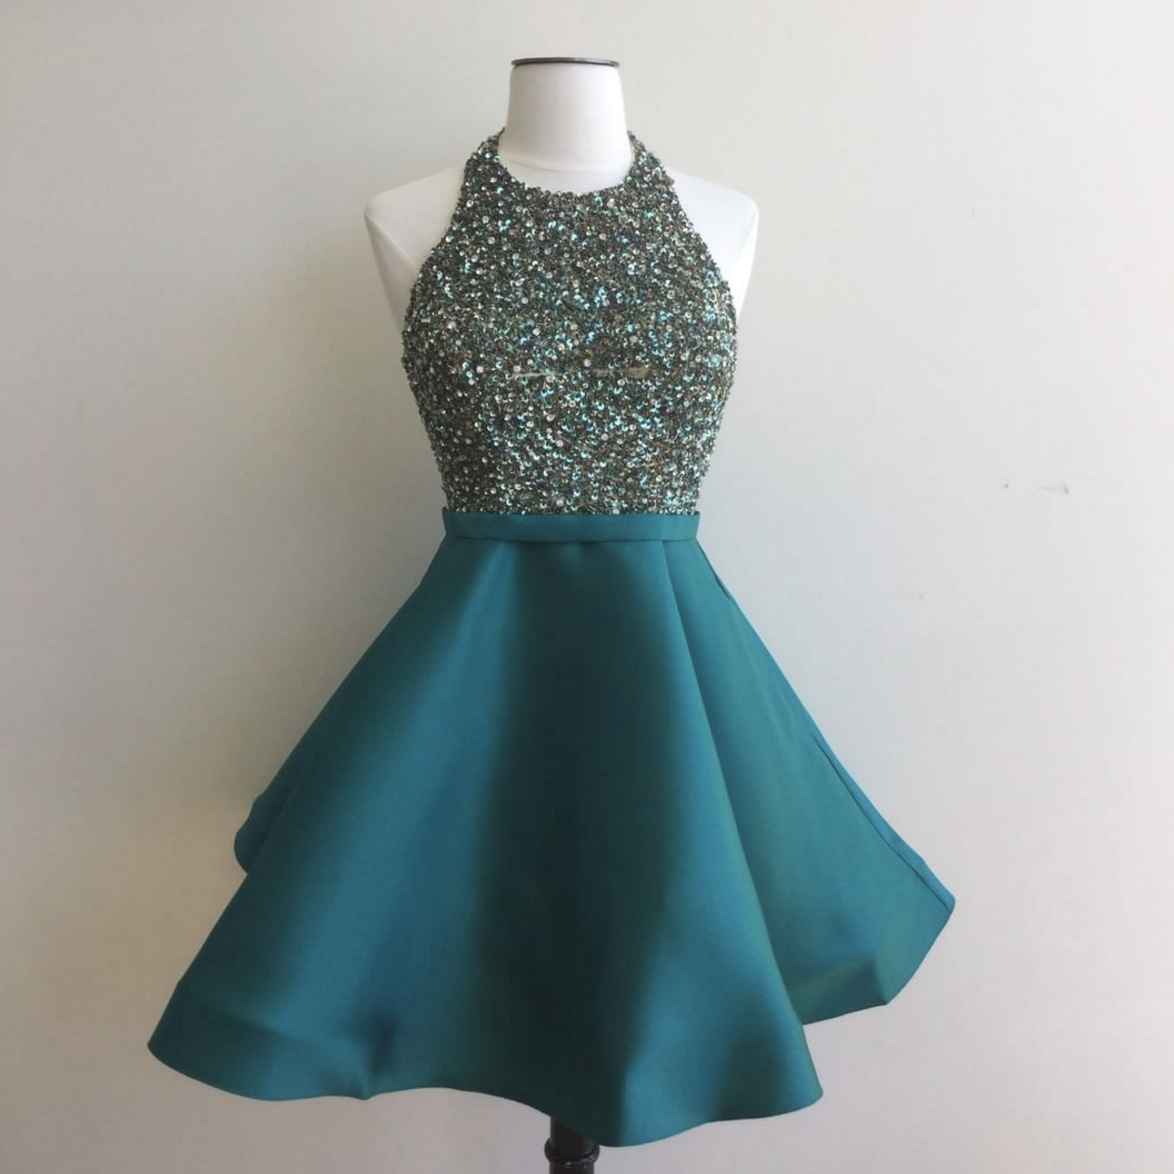 Prom Cute cocktail dresses recommendations to wear for summer in 2019